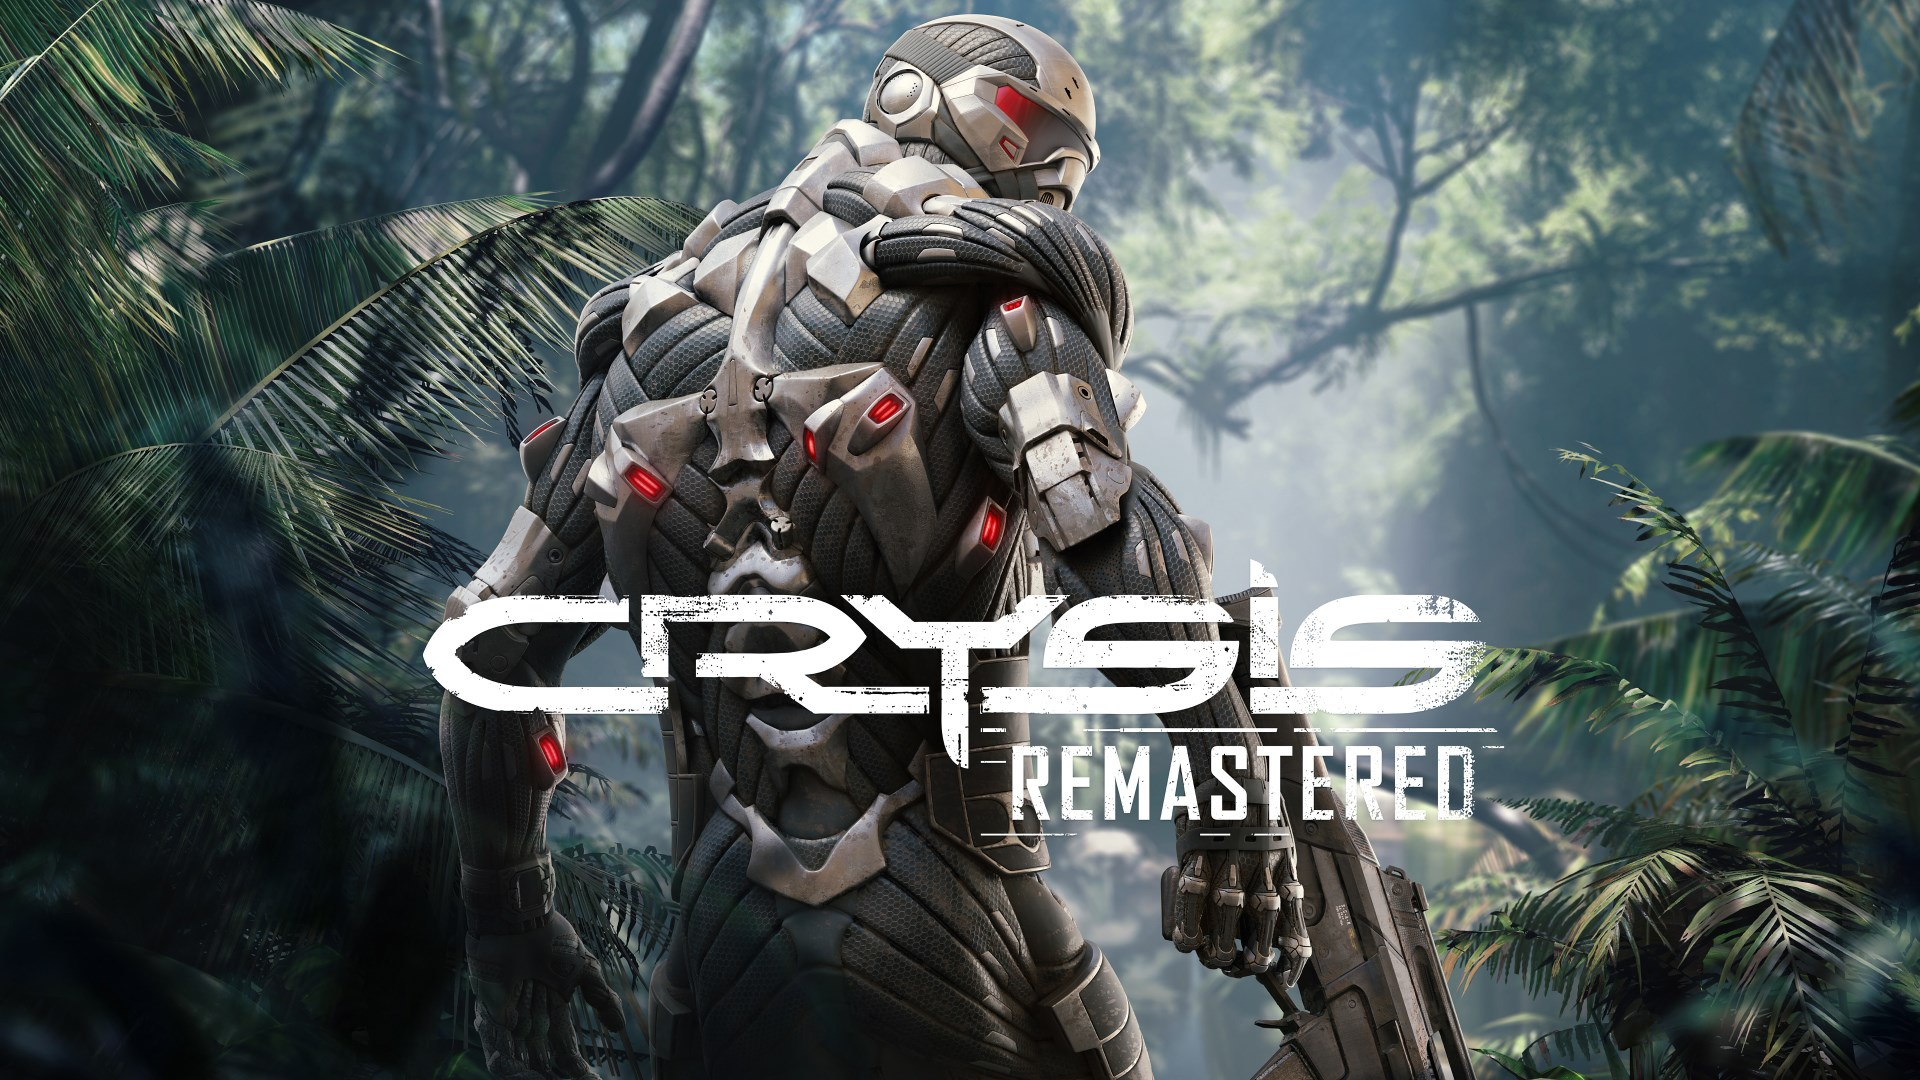 crysis-remastered-header-ms-store-1.jpg?